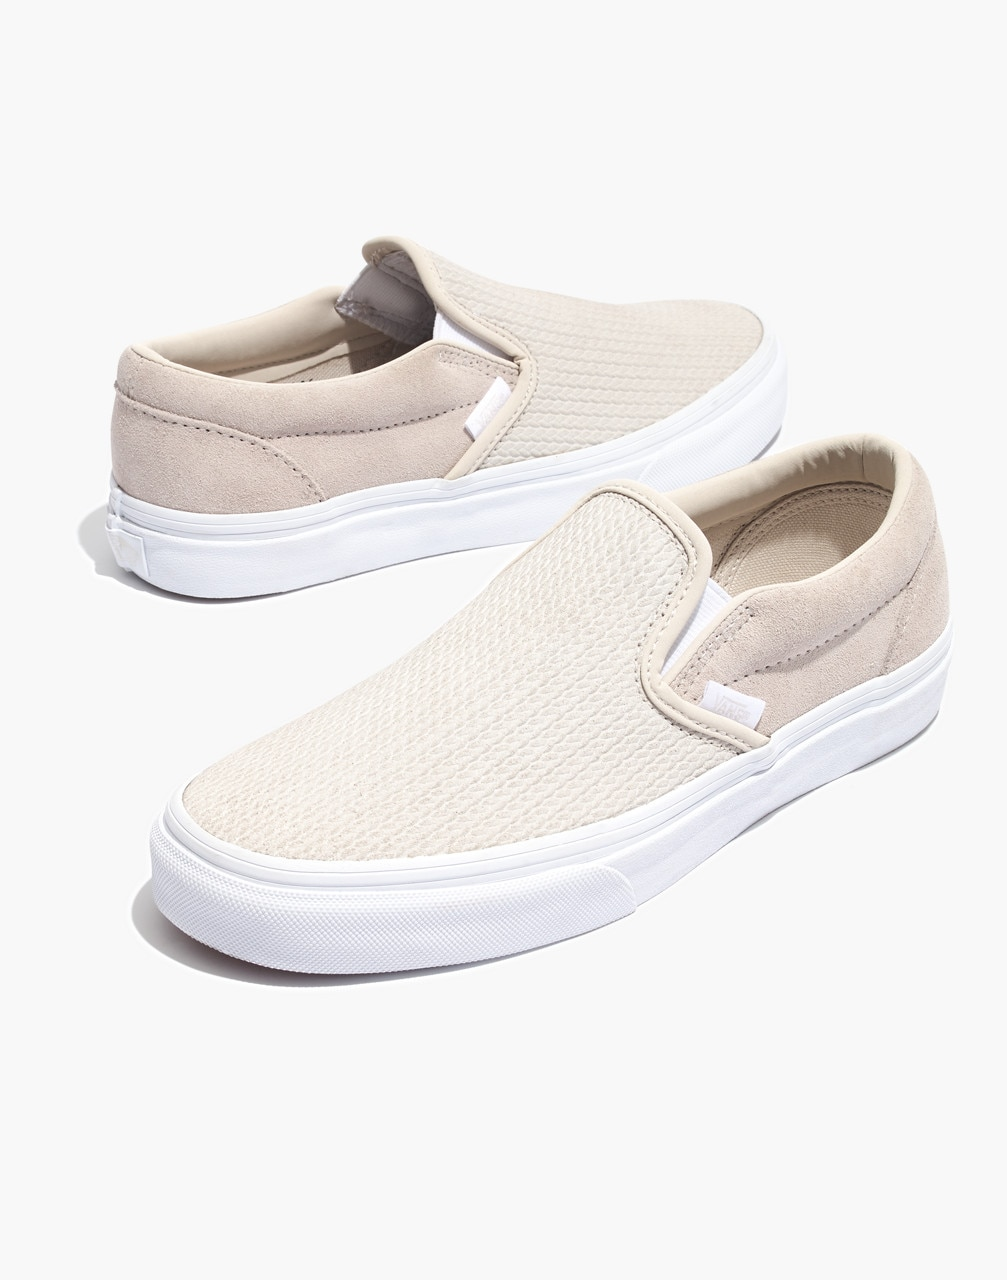 competitive price 73b67 23964 Madewell Vans Unisex Classic Slip-On Sneakers in Moonbeam Suede